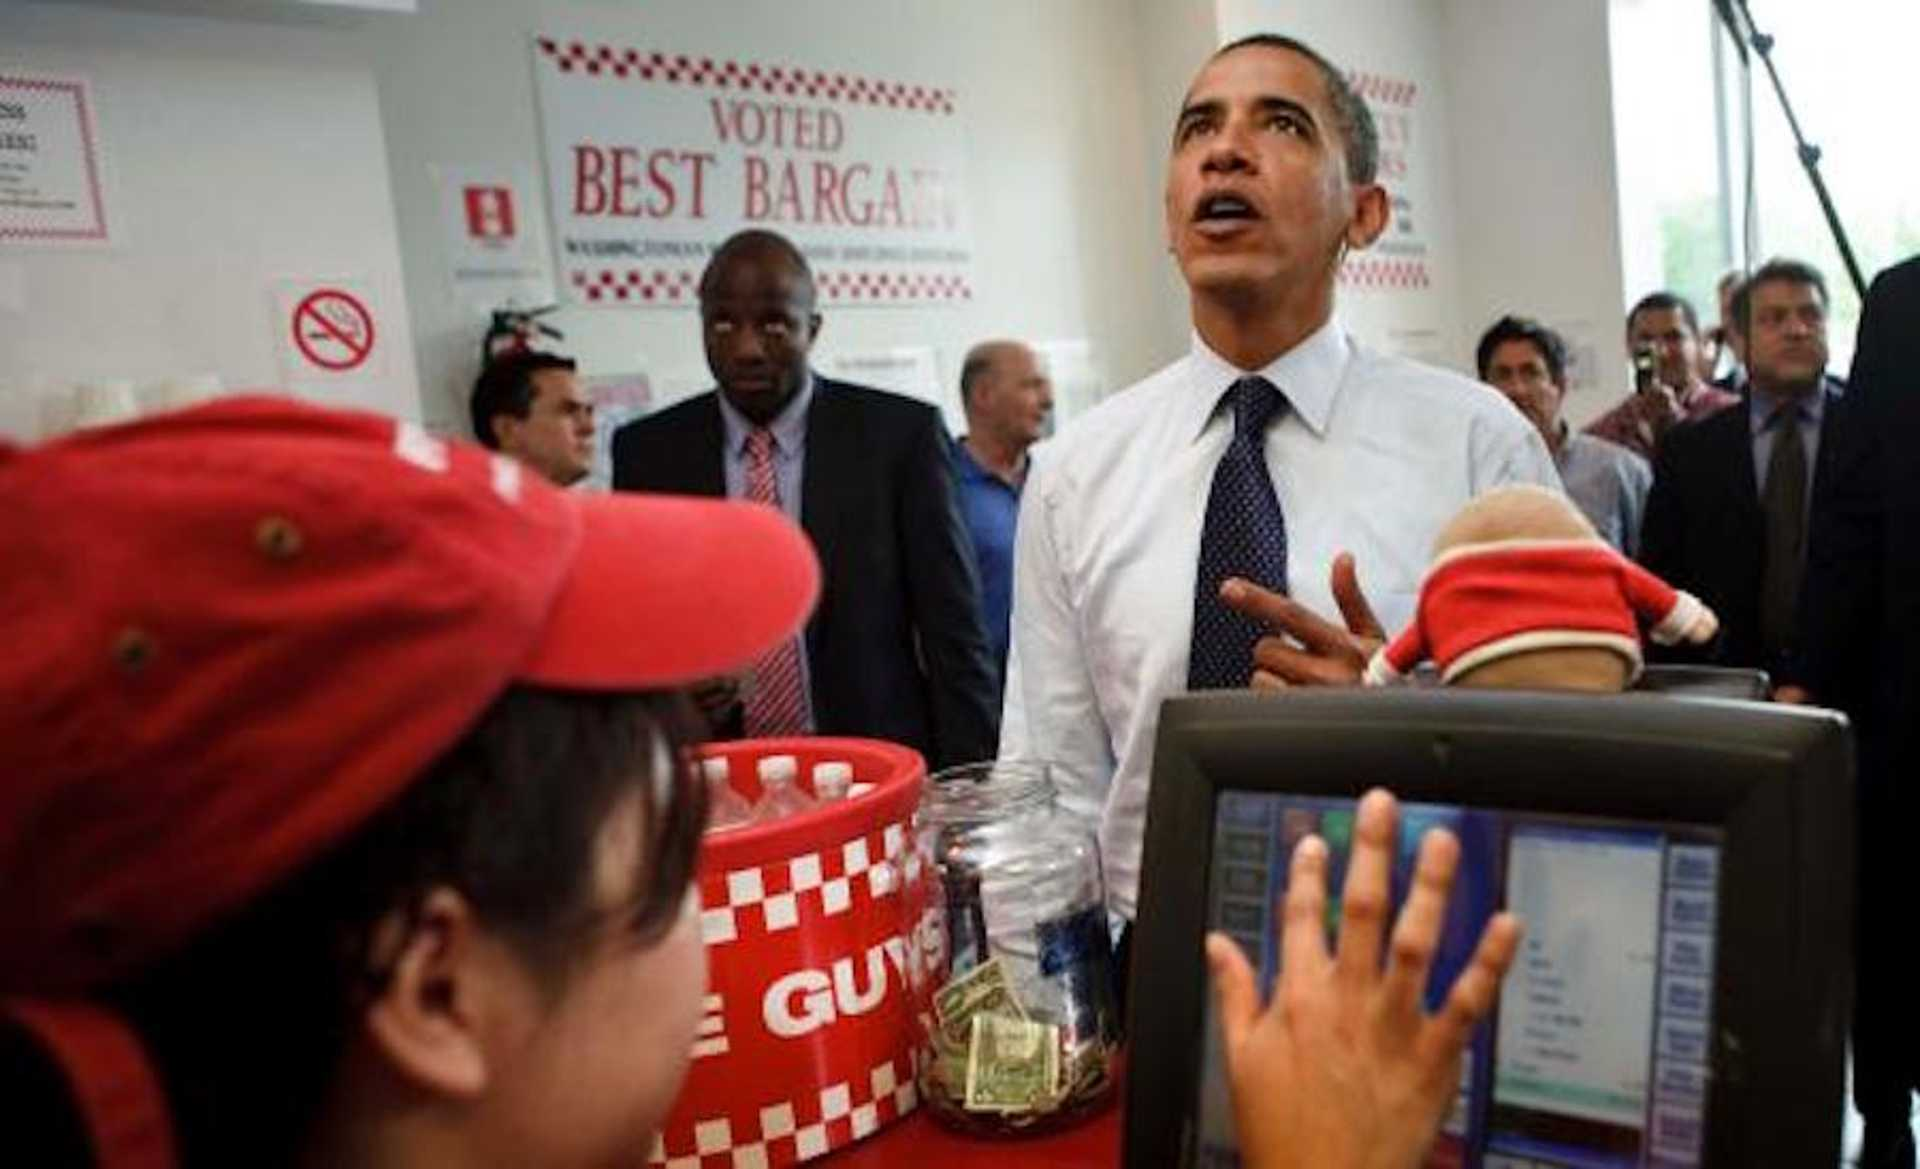 29 - Five Guys and an Obama